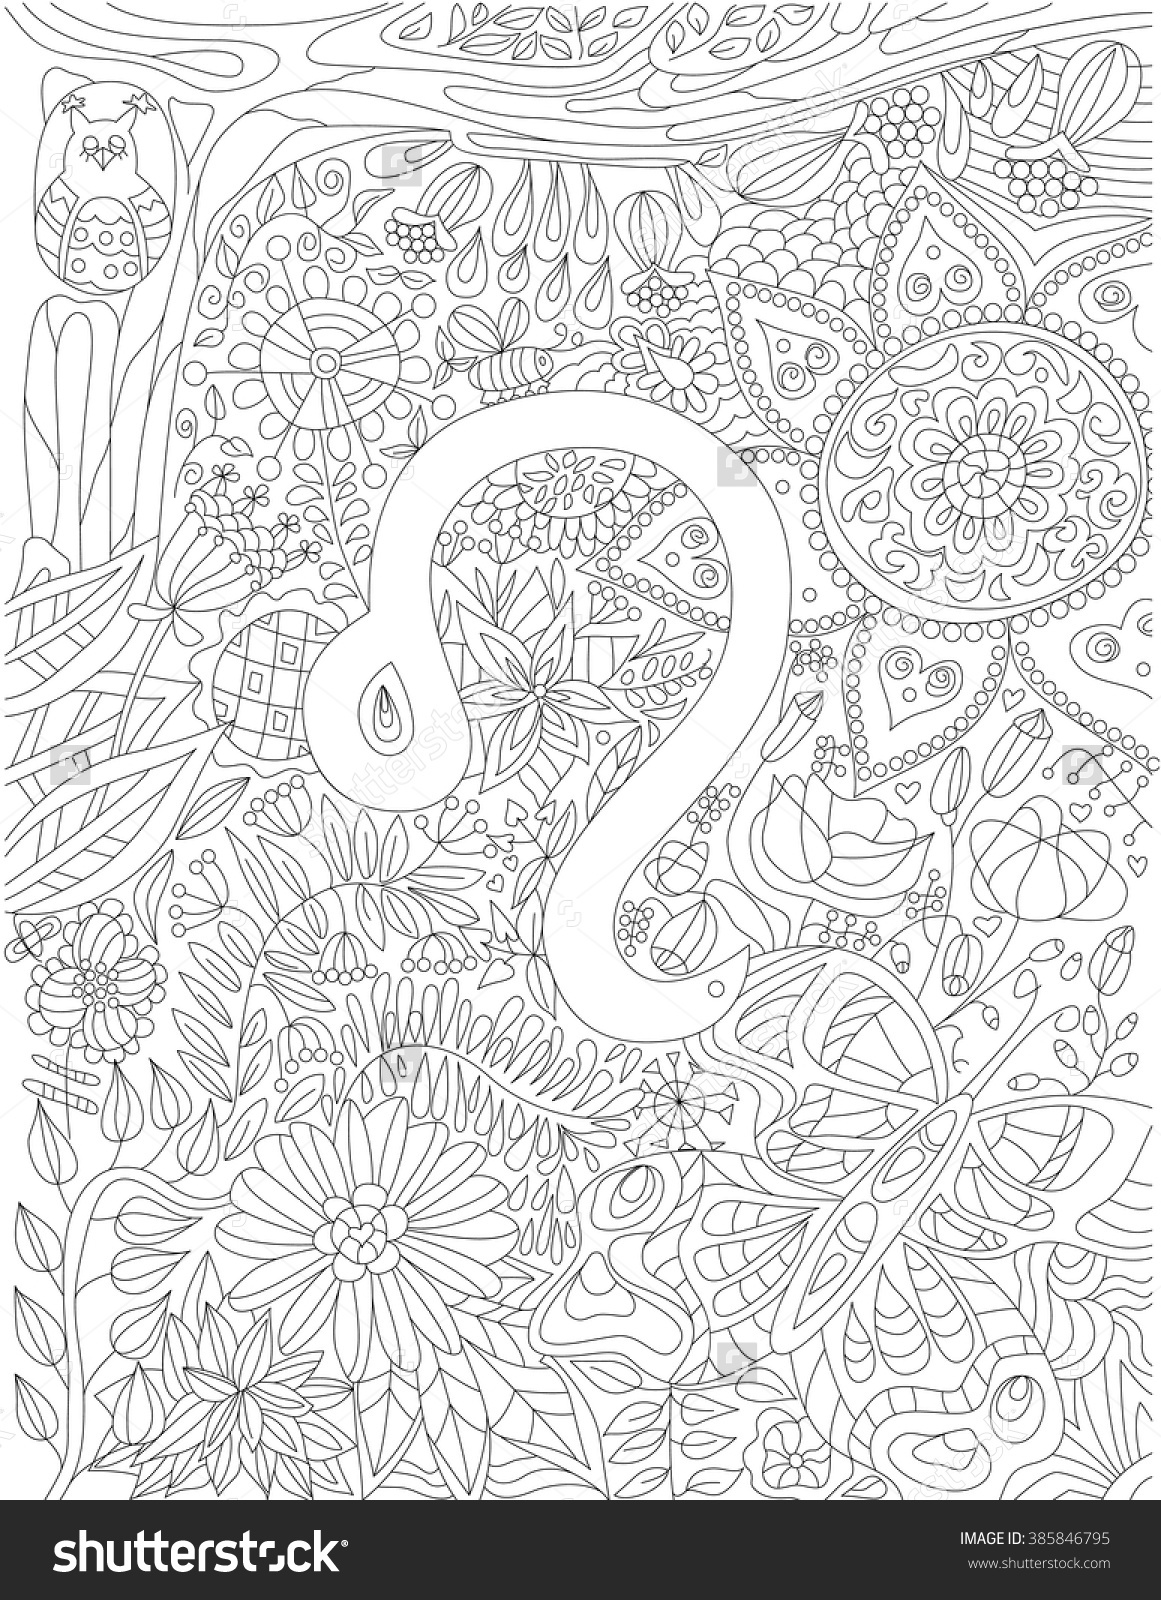 Leo (Astrology) coloring #20, Download drawings